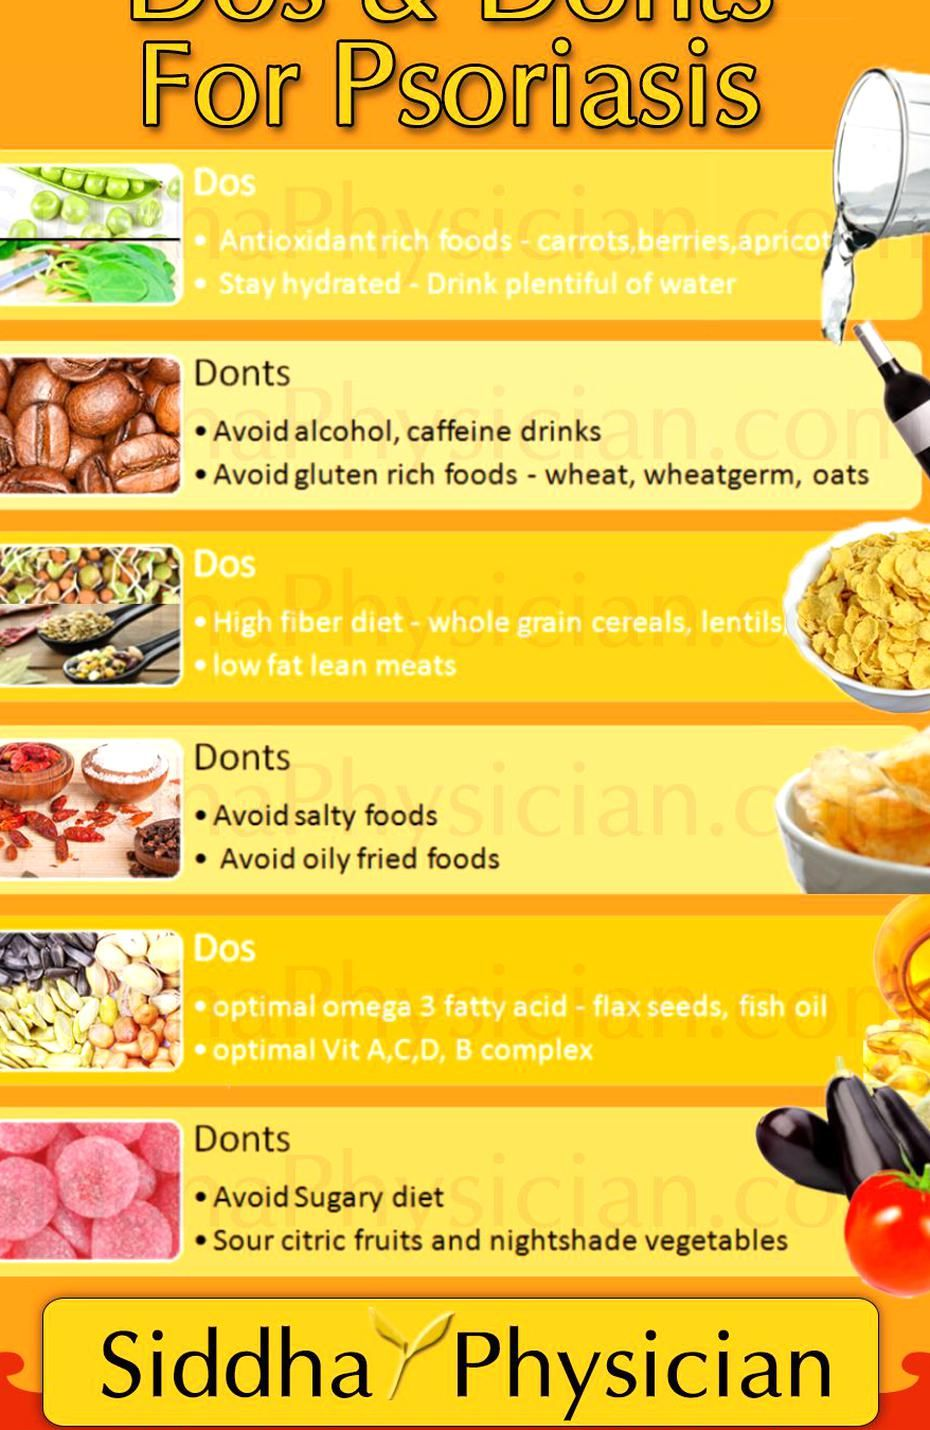 Dietary Dos Donts For Psoriasis Find More At Psoriasis Diet Psoriasis Healing Natural Psoriasis Remedies